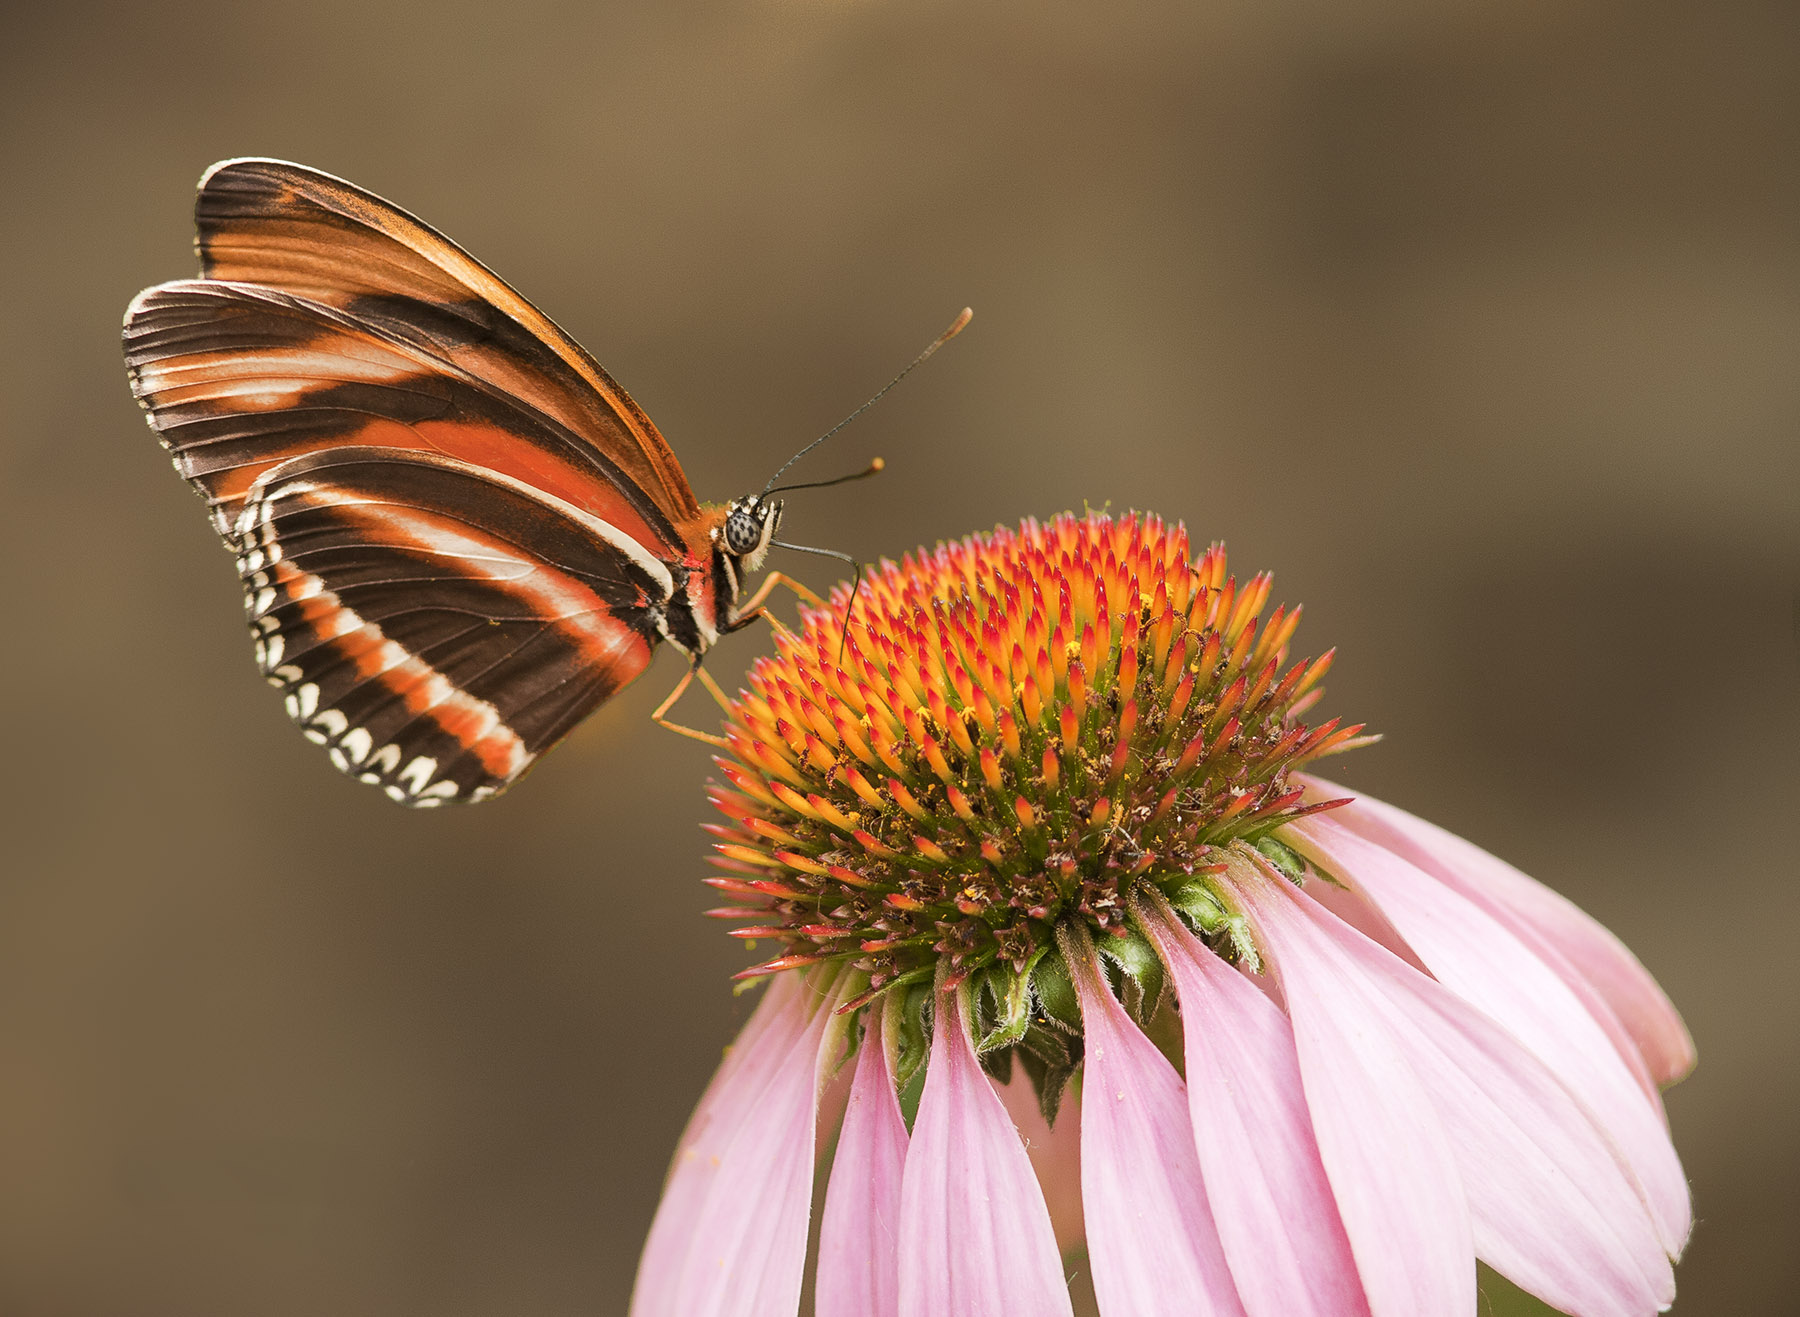 Jeremy Stein: Butterfly on Coneflower